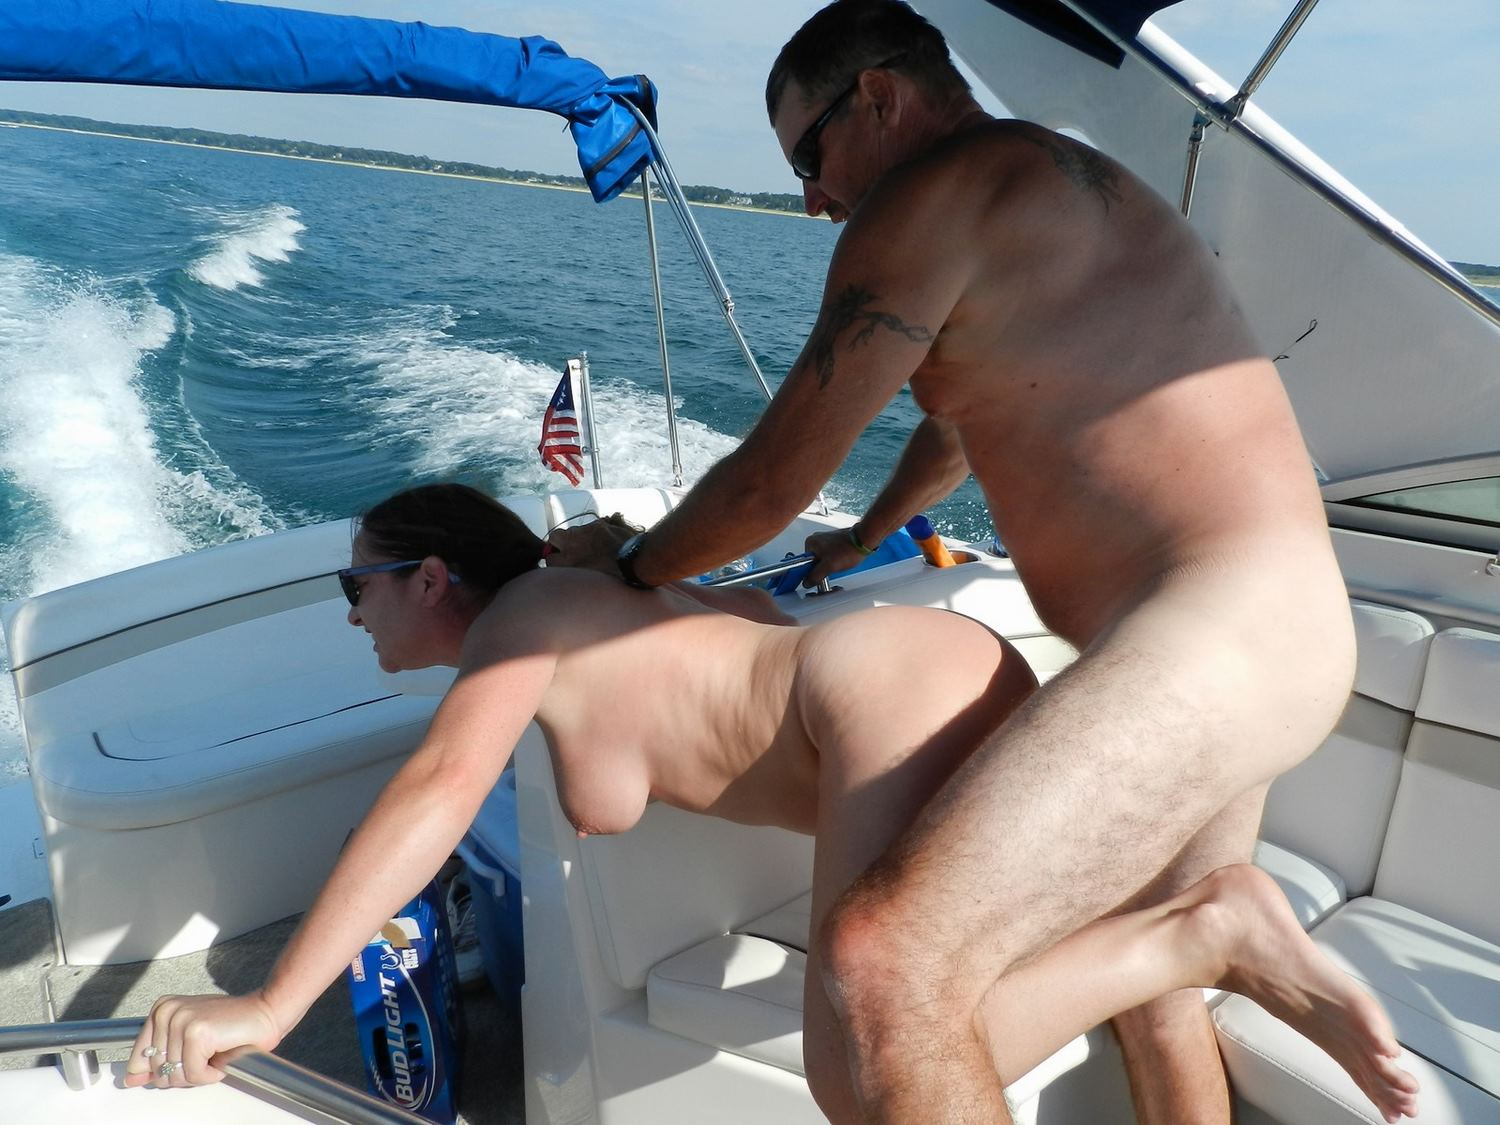 Beach boat sex nude